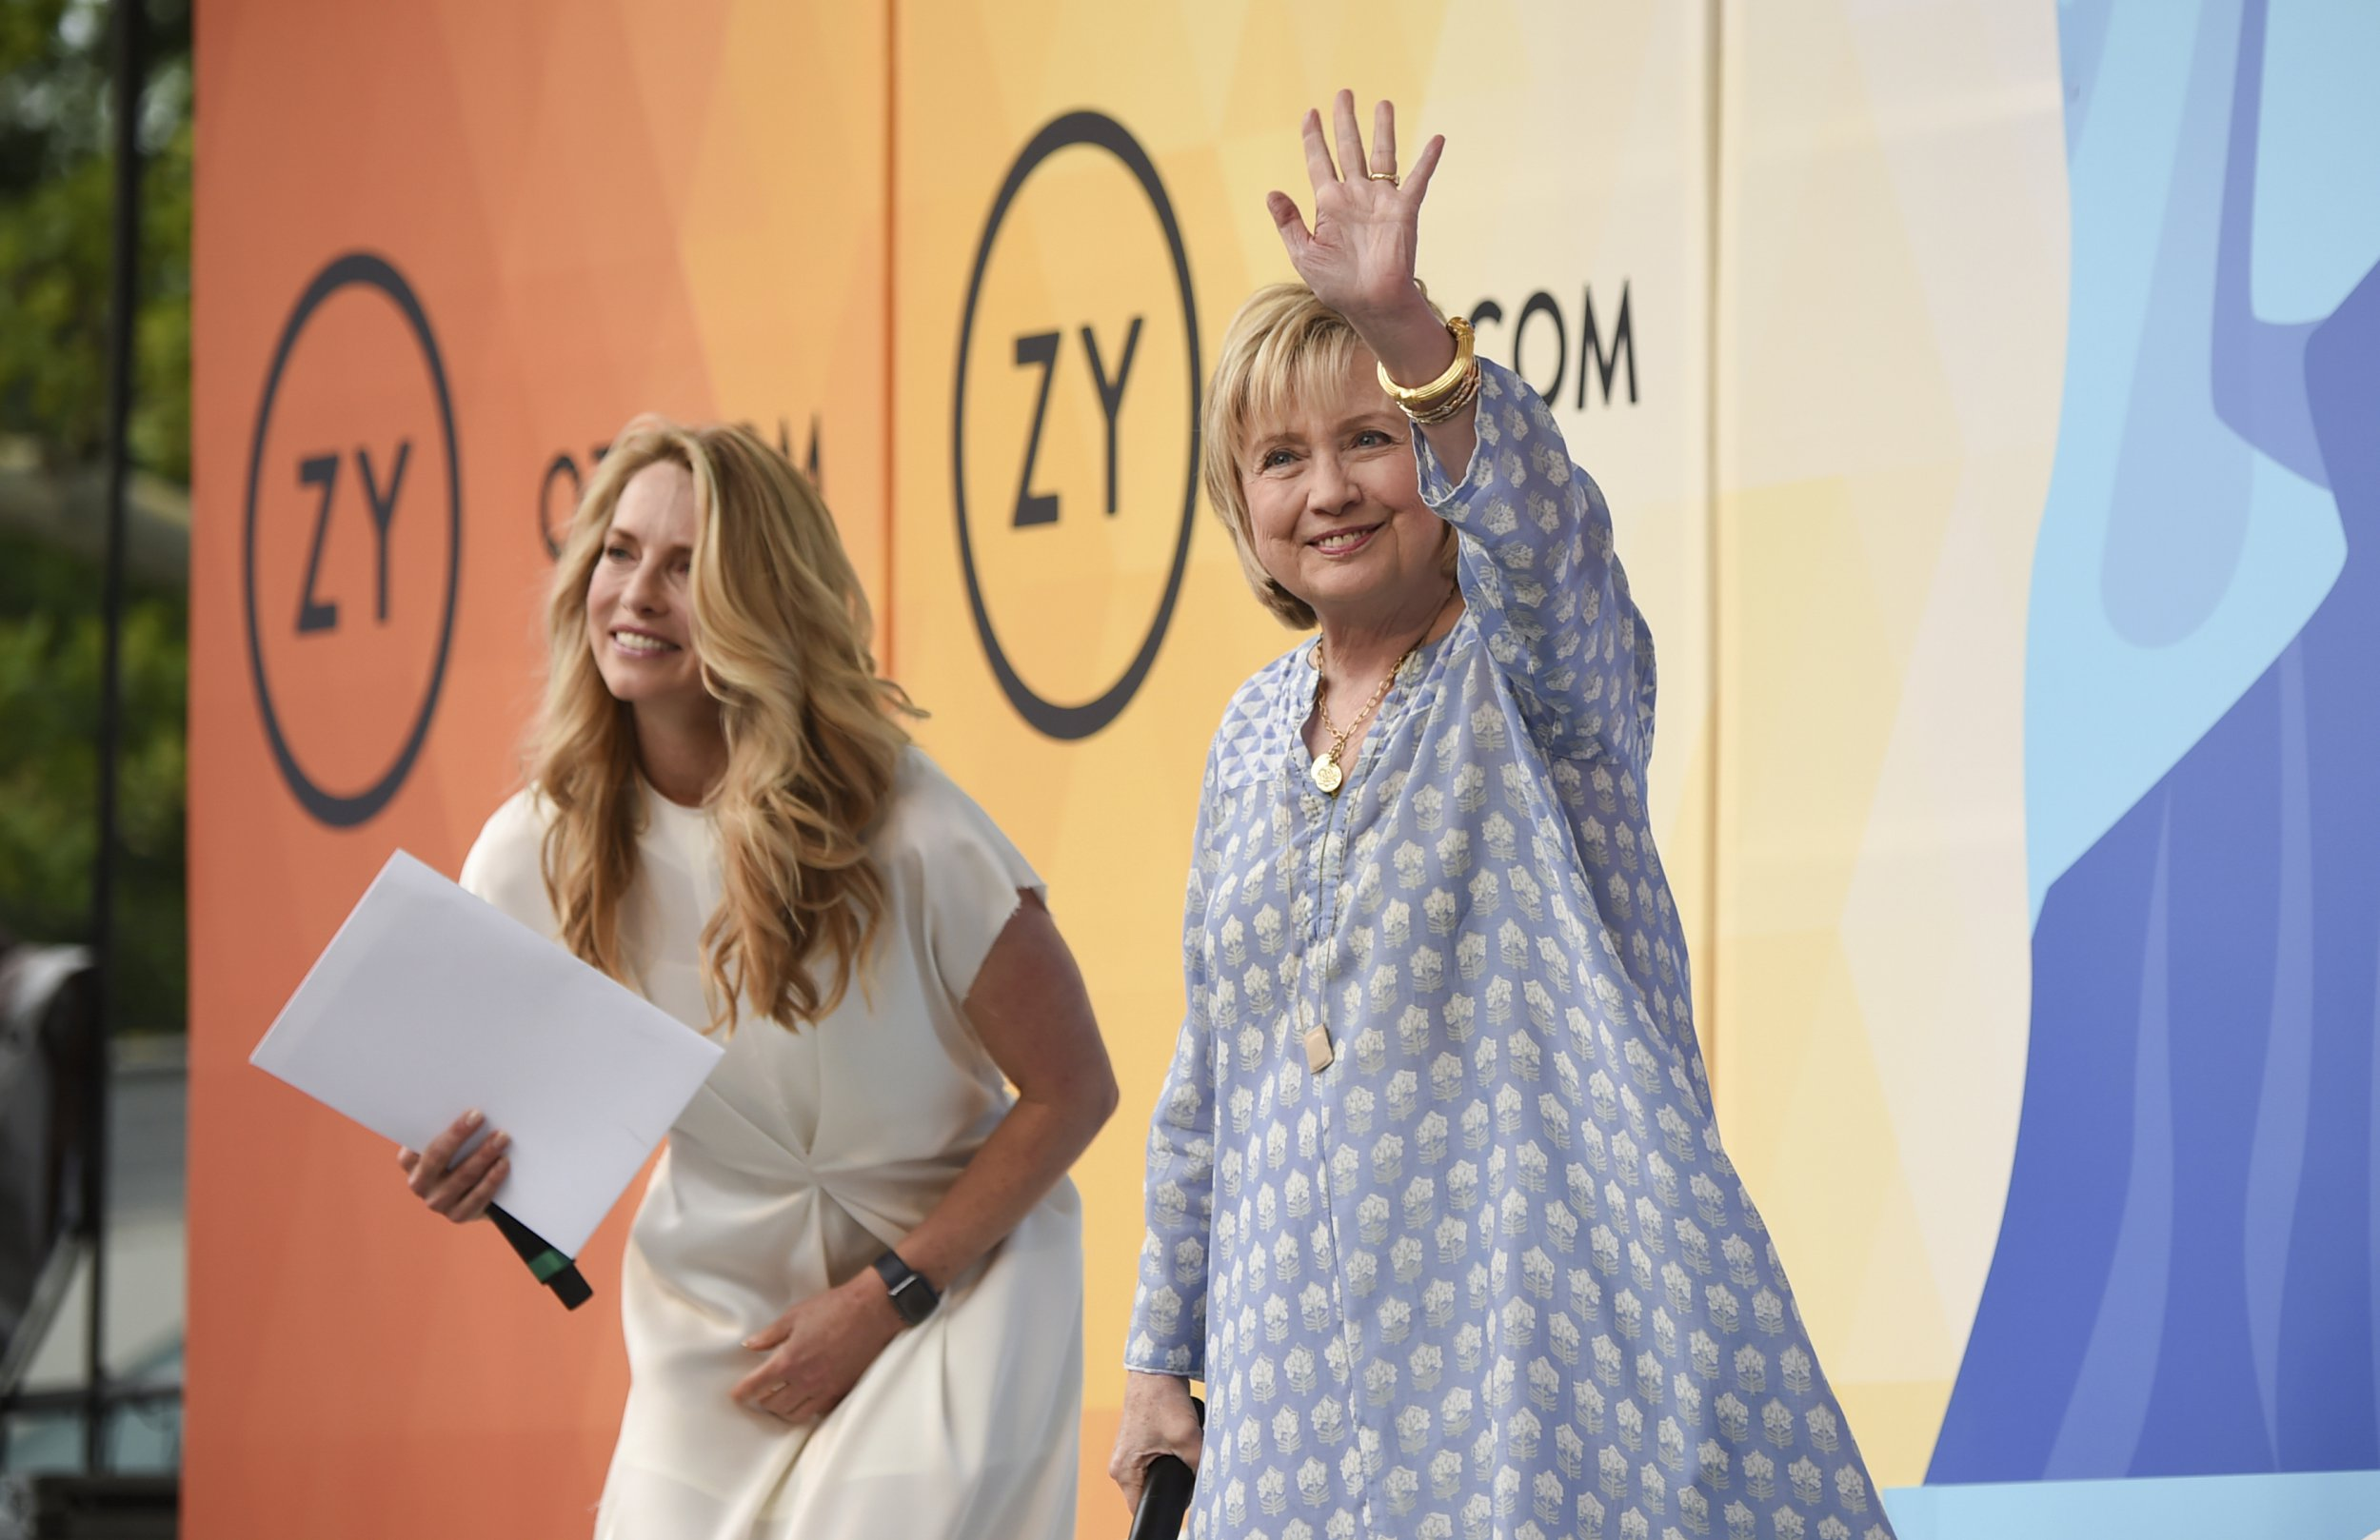 Democratic presidential candidate and former Secretary of State Hillary Rodham Clinton, right, waves to the crowd before a conversation with Laurene Powell Jobs at OZY Fest in Central Park on Saturday, July 21, 2018, in New York. (Photo by Evan Agostini/Invision/AP)